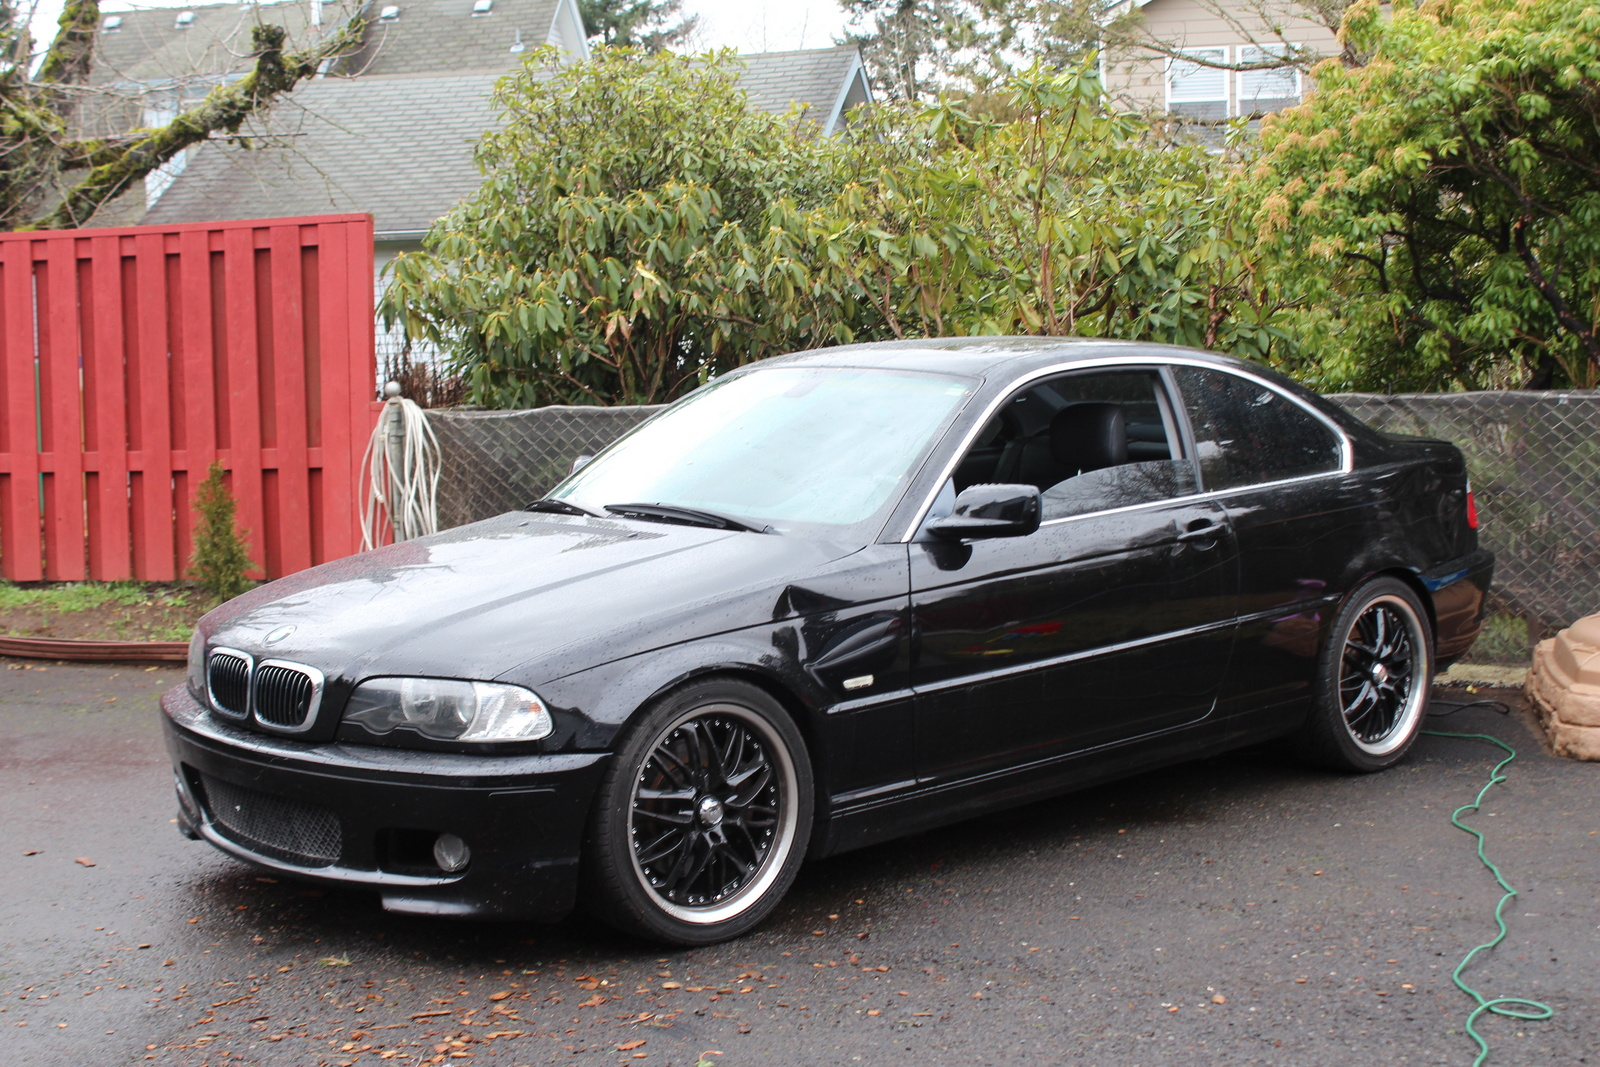 Bmw 3 Series 330ci 2002 Technical Specifications Interior And X5 Motor Wiring Diagram Photo 1